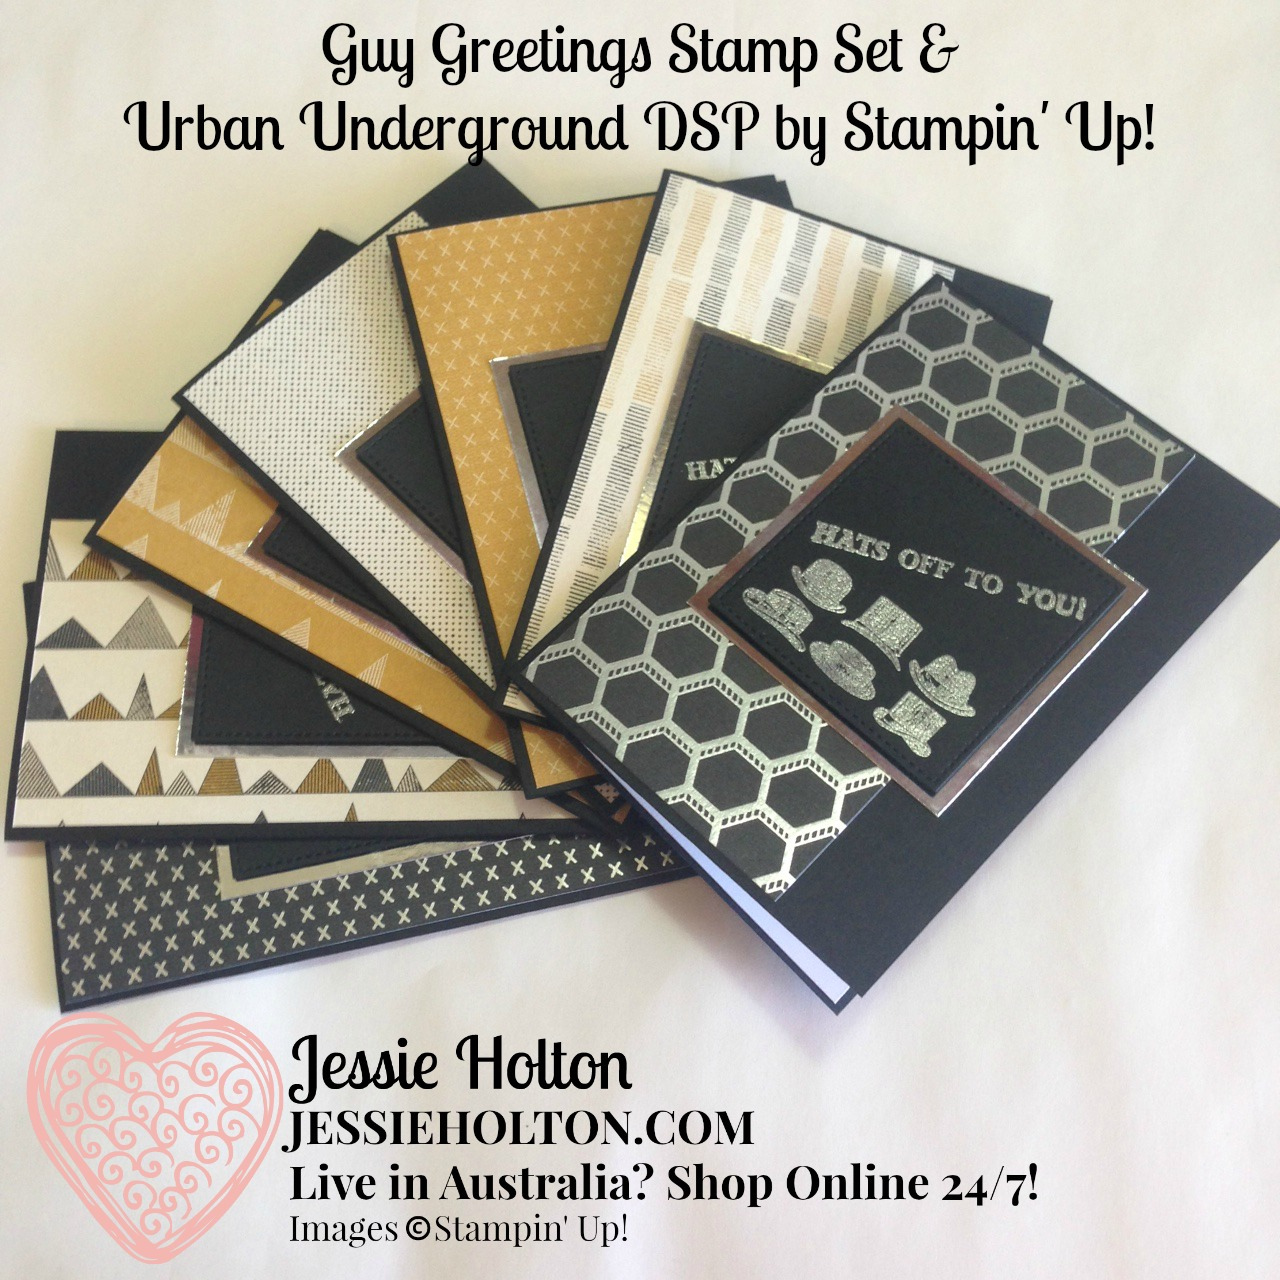 Jessie holton aussie su demo guy greetings cards for these cards i have silver heat embossed the images sentiments from the guy greetings stamp set onto basic black cardstock cut out with the largest m4hsunfo Images